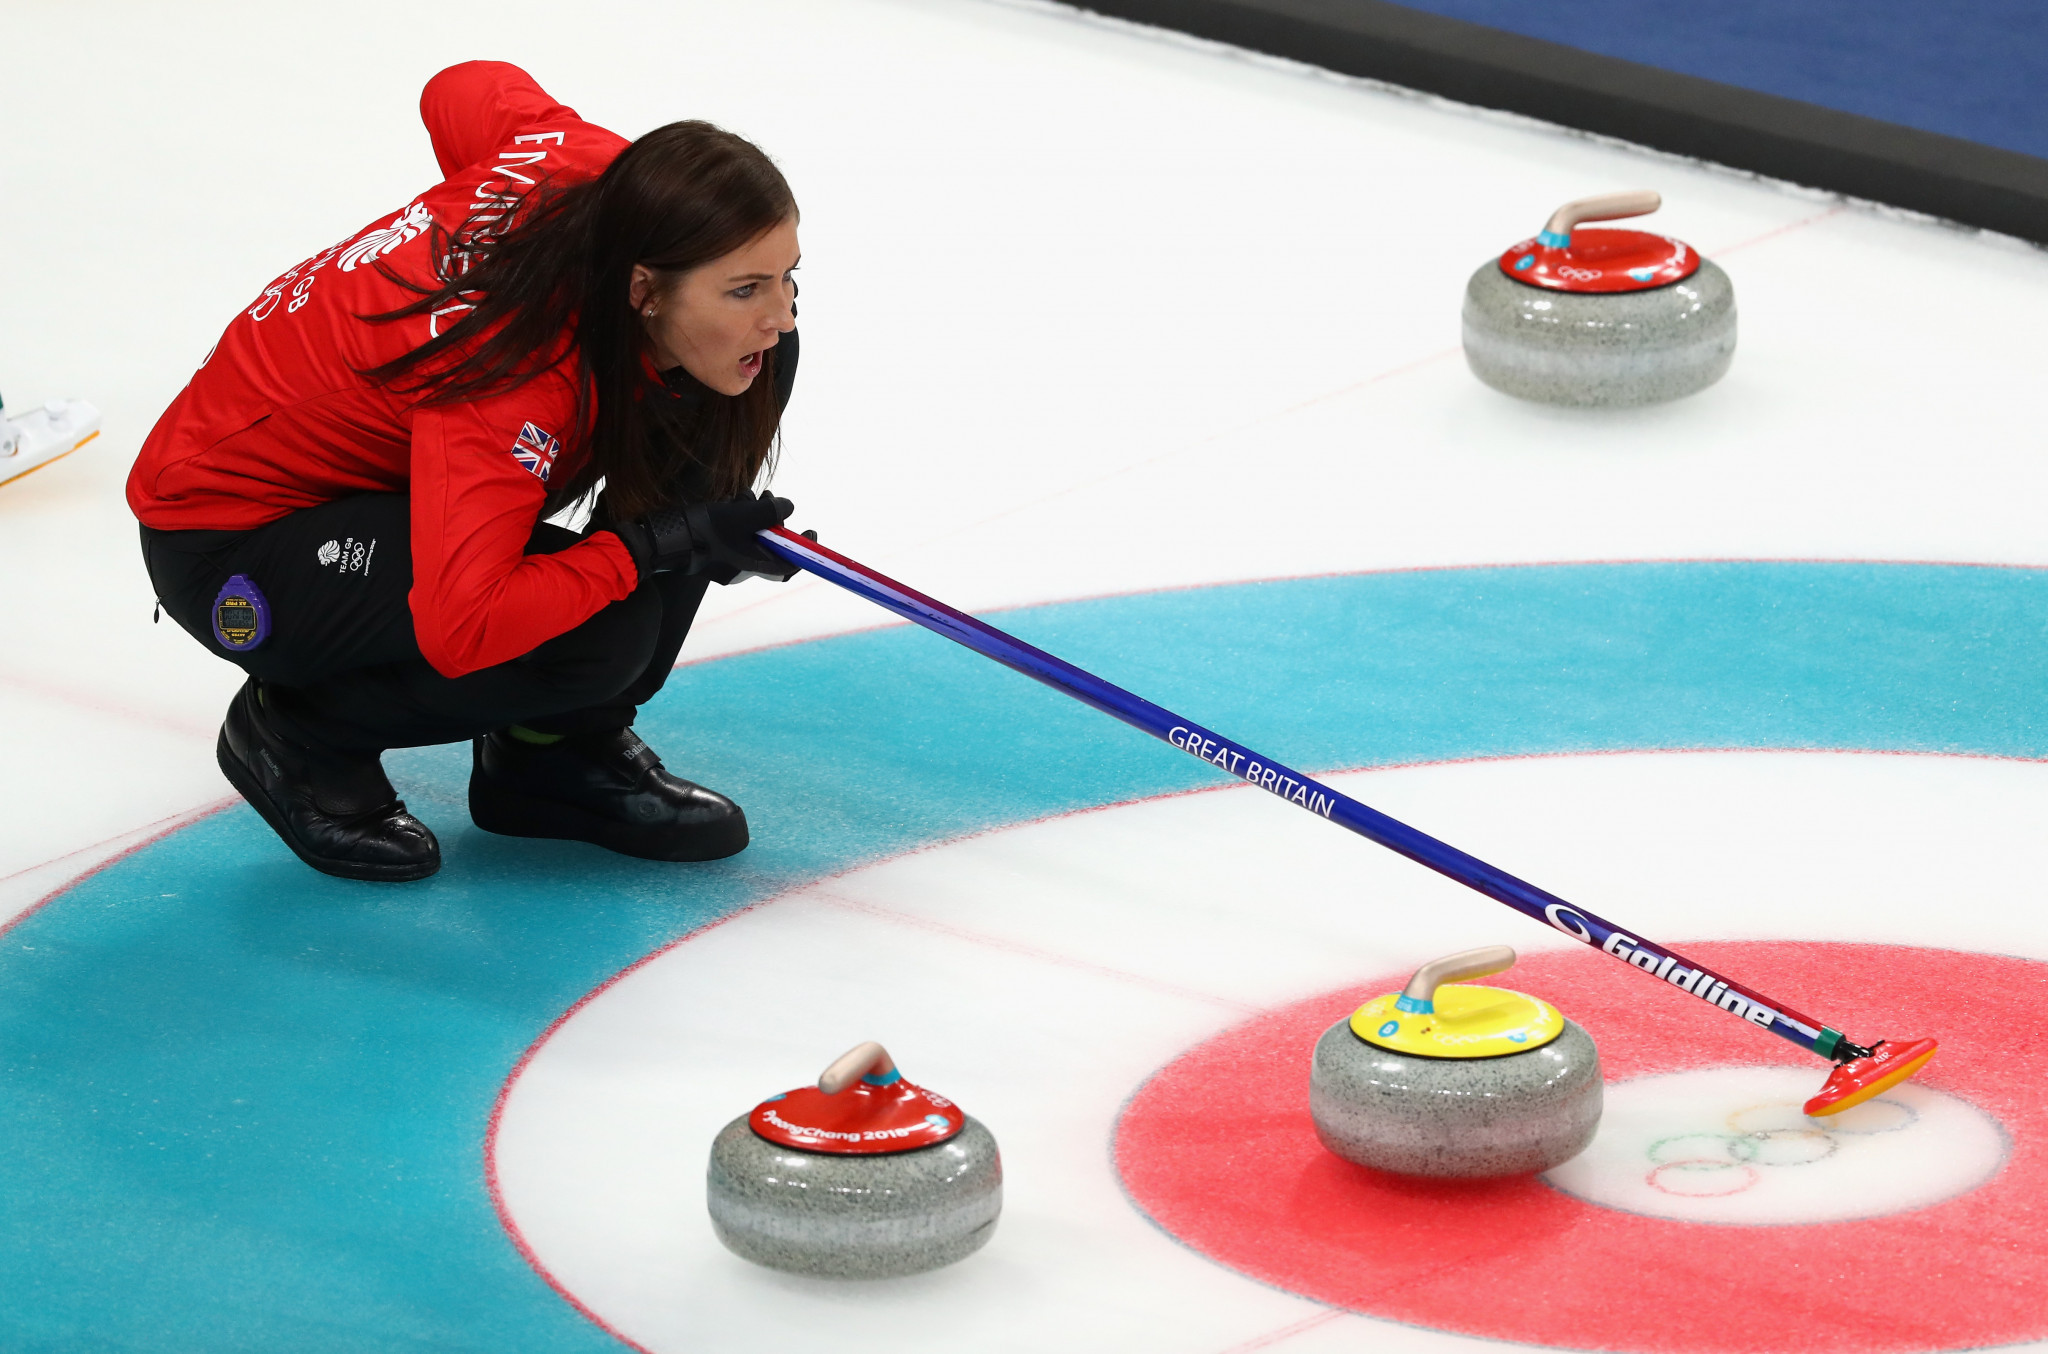 Curling At The 2020 Olympic Winter Games.Eve Muirhead To Lead Women S Scottish Curling Squad At